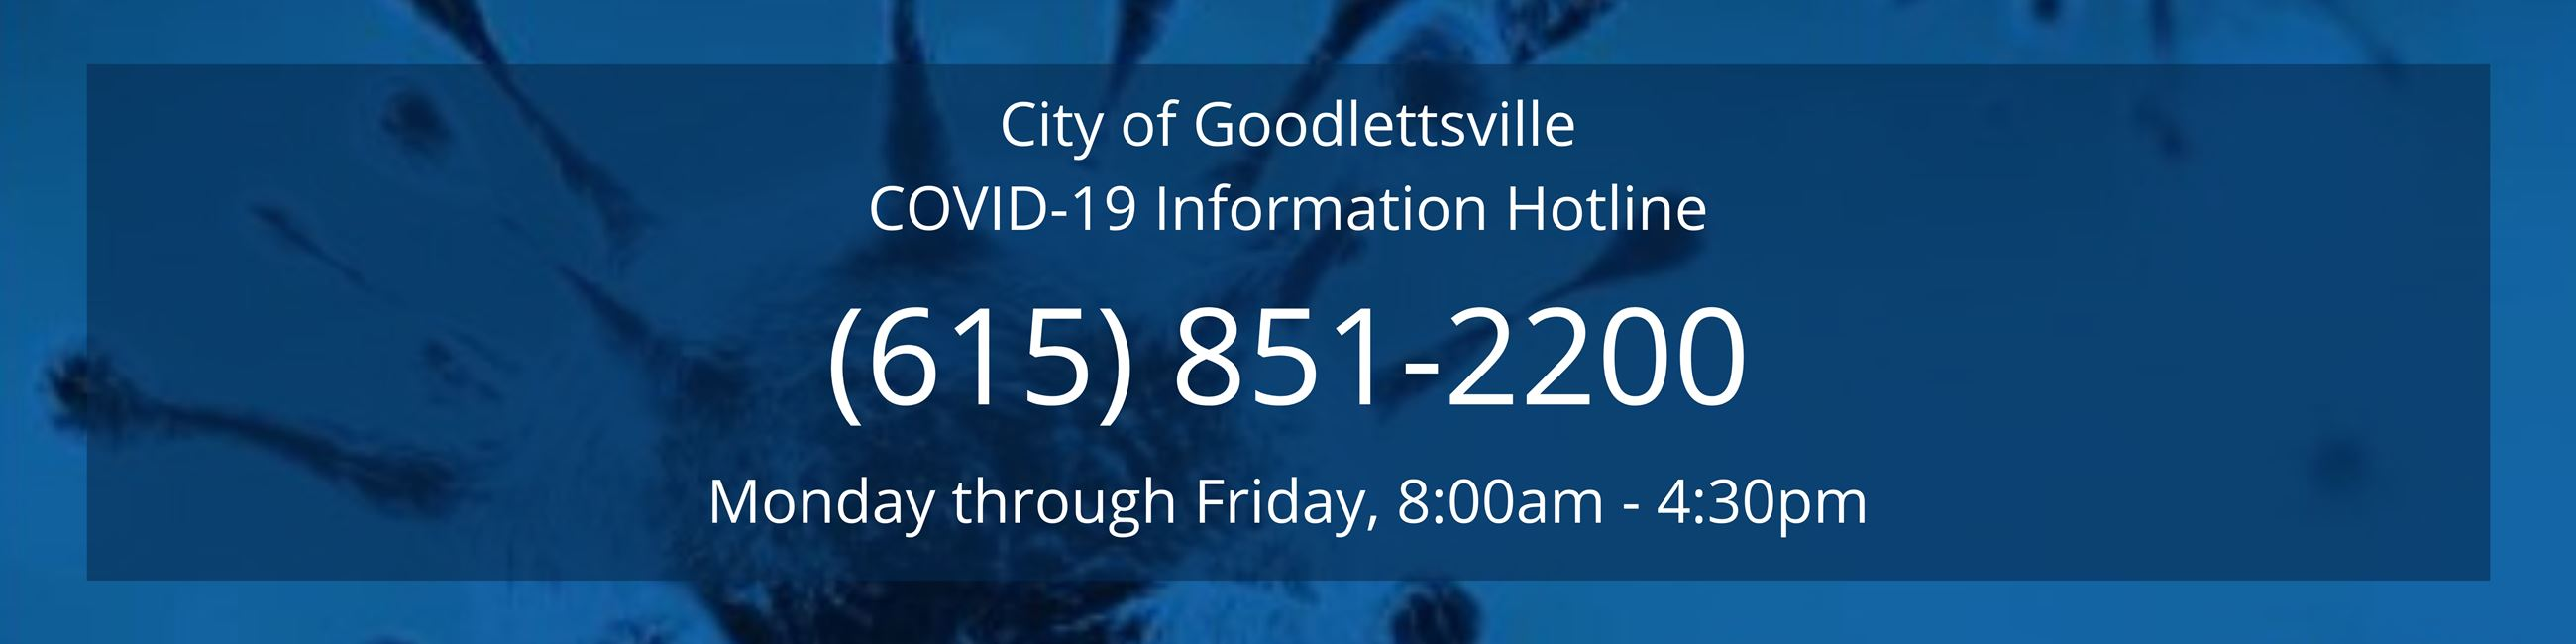 COVID-19 Information Hotline Header